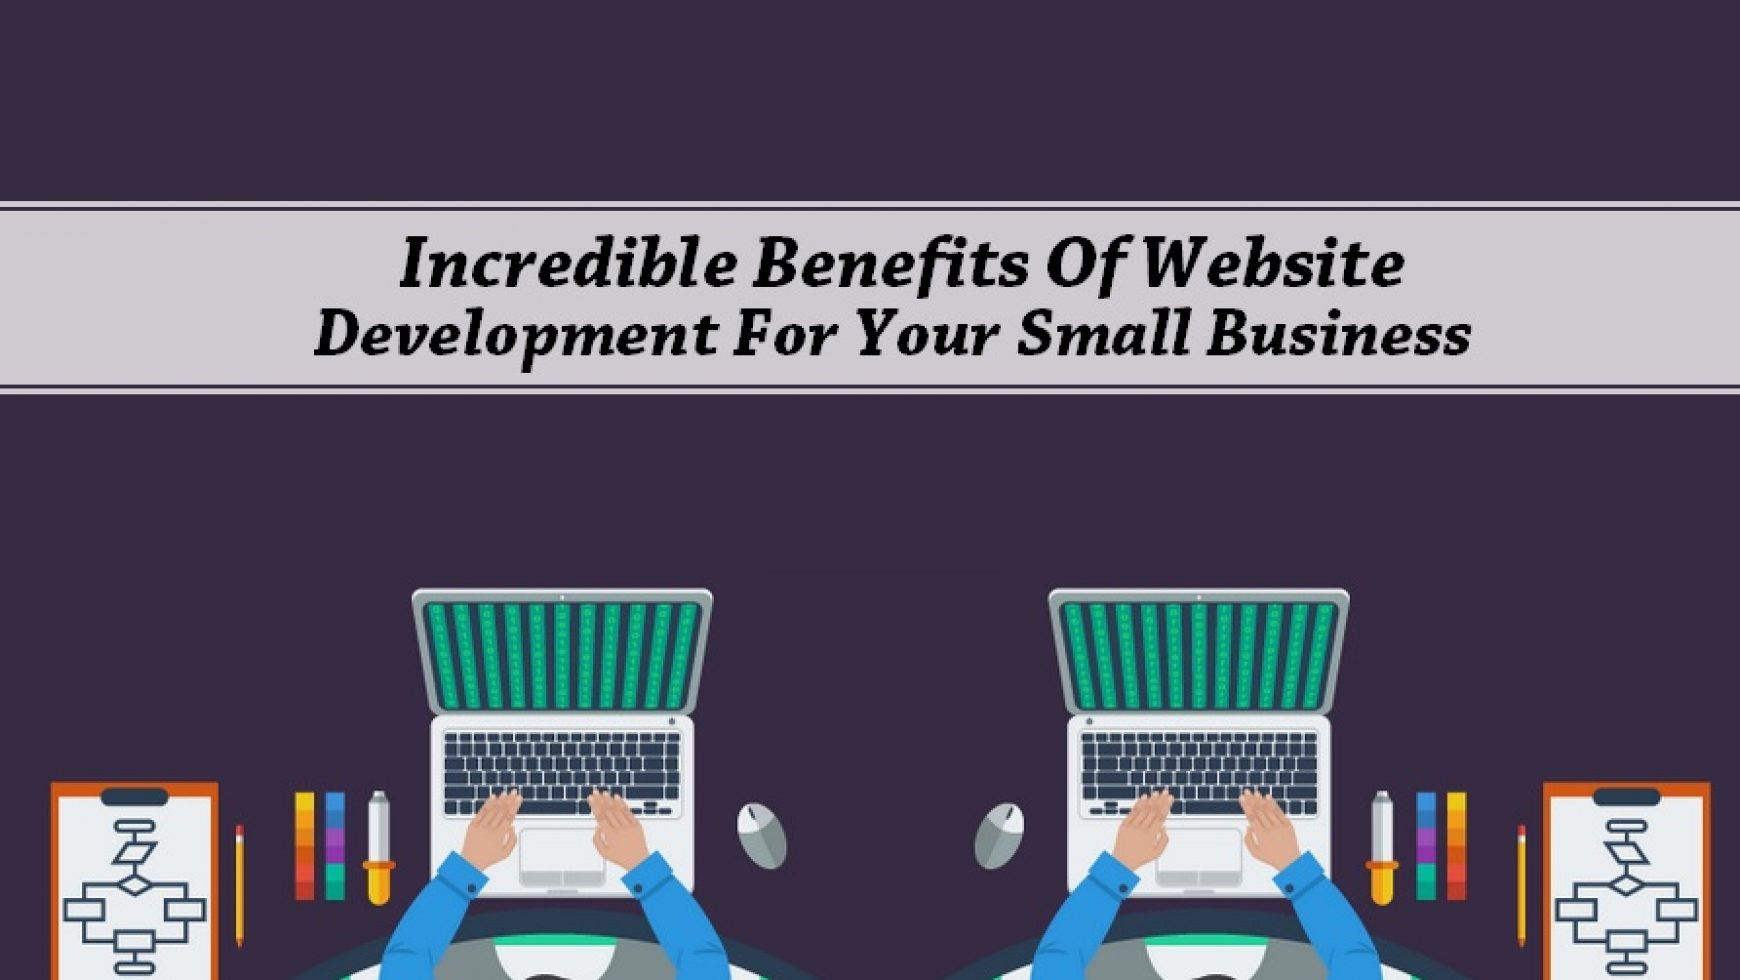 Incredible Benefits Of Website Development For Your Small Business